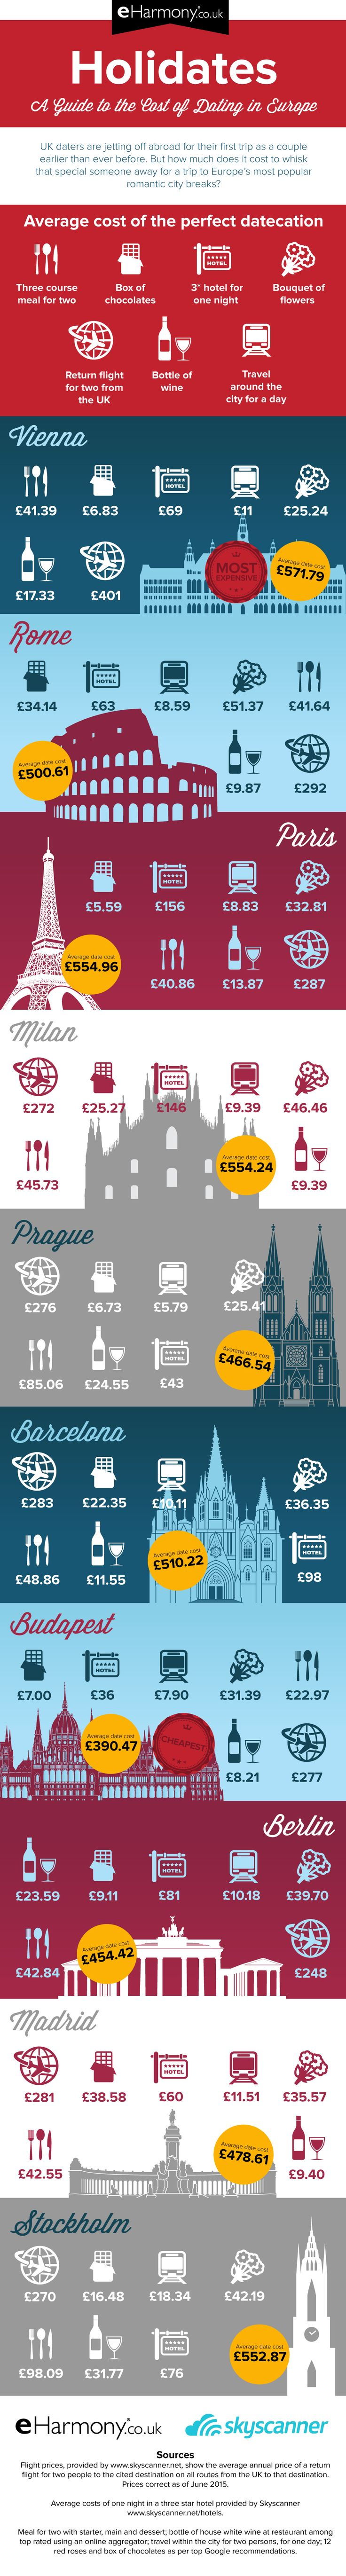 "A guide to the cost of a ""date-cation"" in ten of Europe's most romantic city destinations"